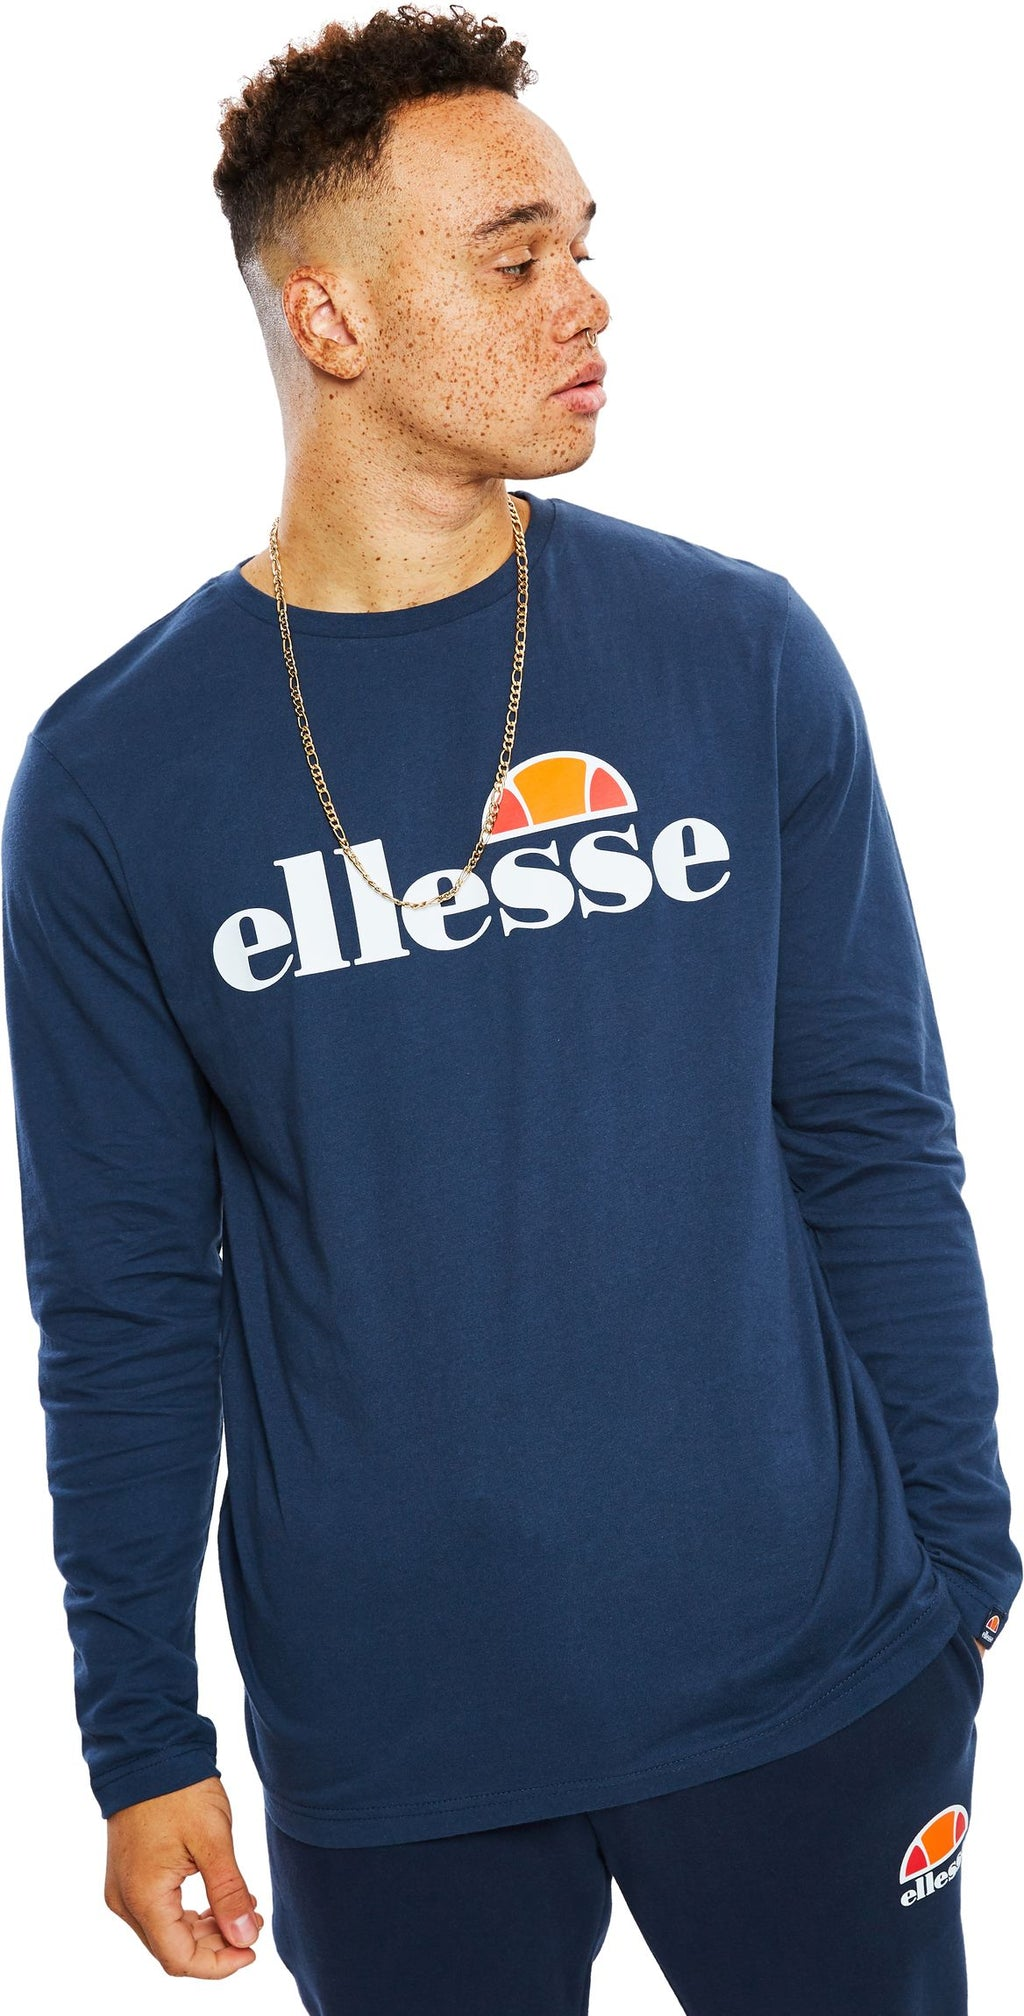 Ellesse-Grazie-Long-Sleeve-T-Shirt-Blue